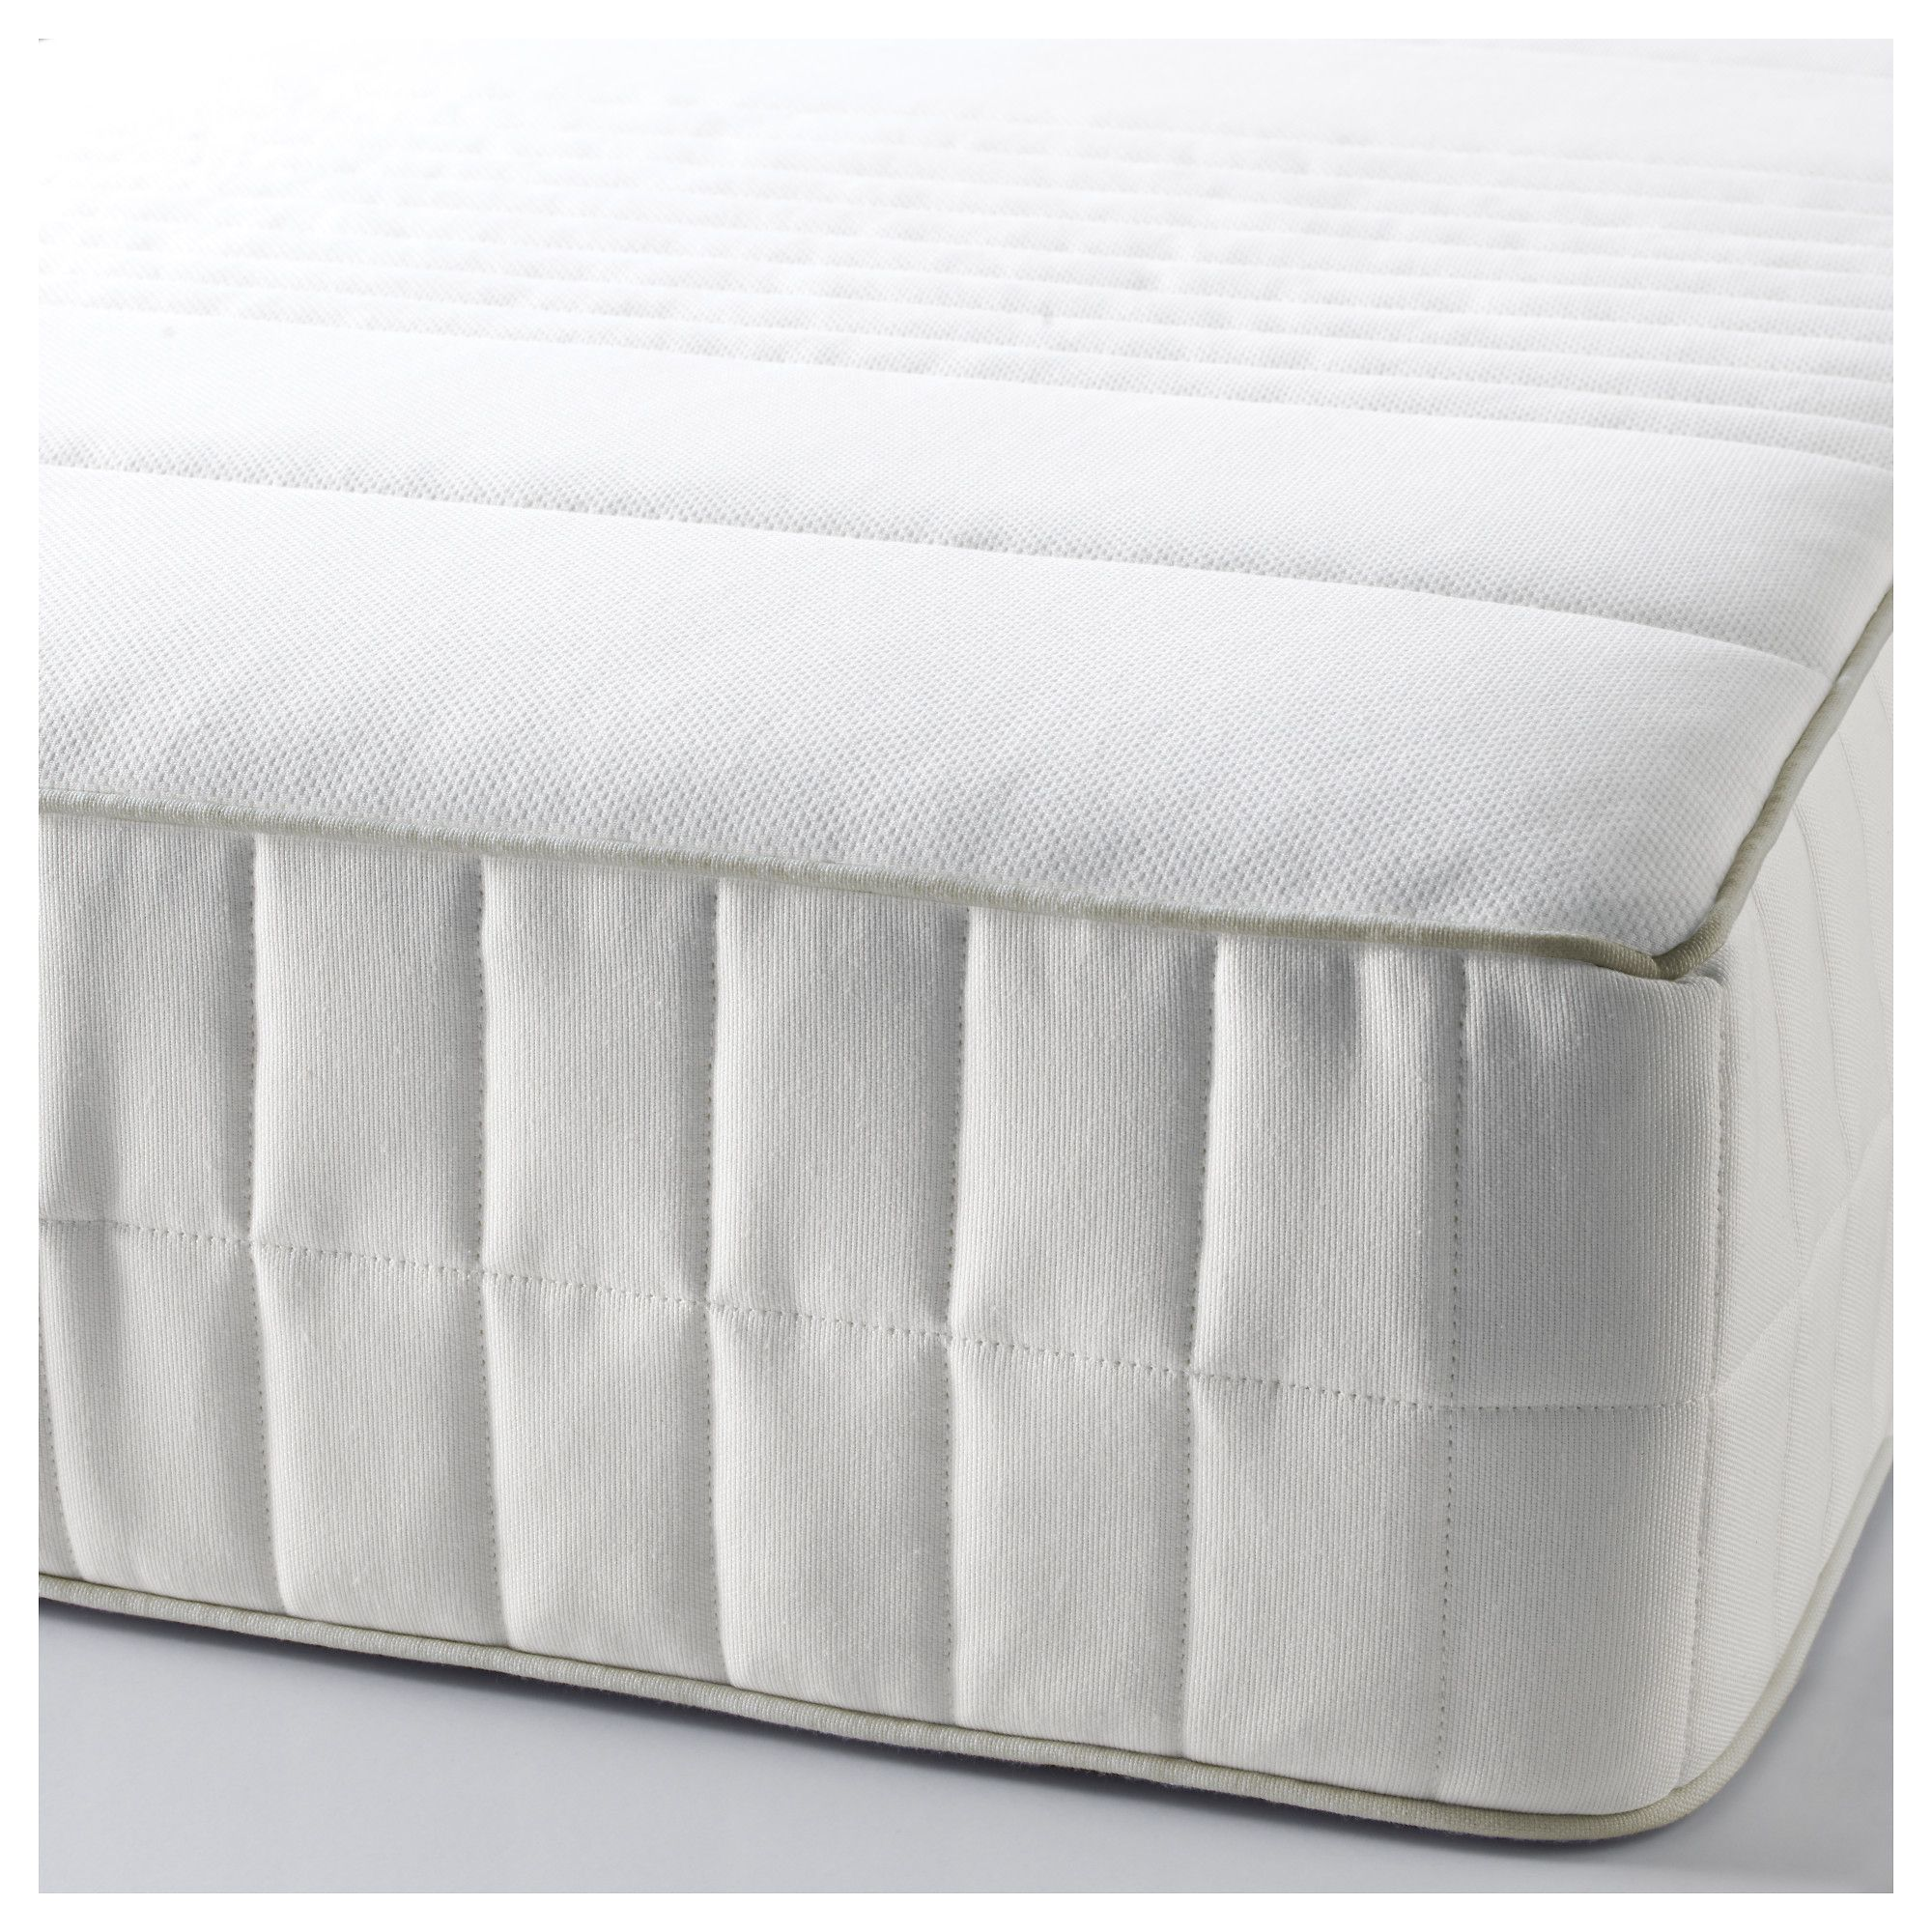 your mattresses sized comfort x mattress htm ikea sticker img pedic memory online c order